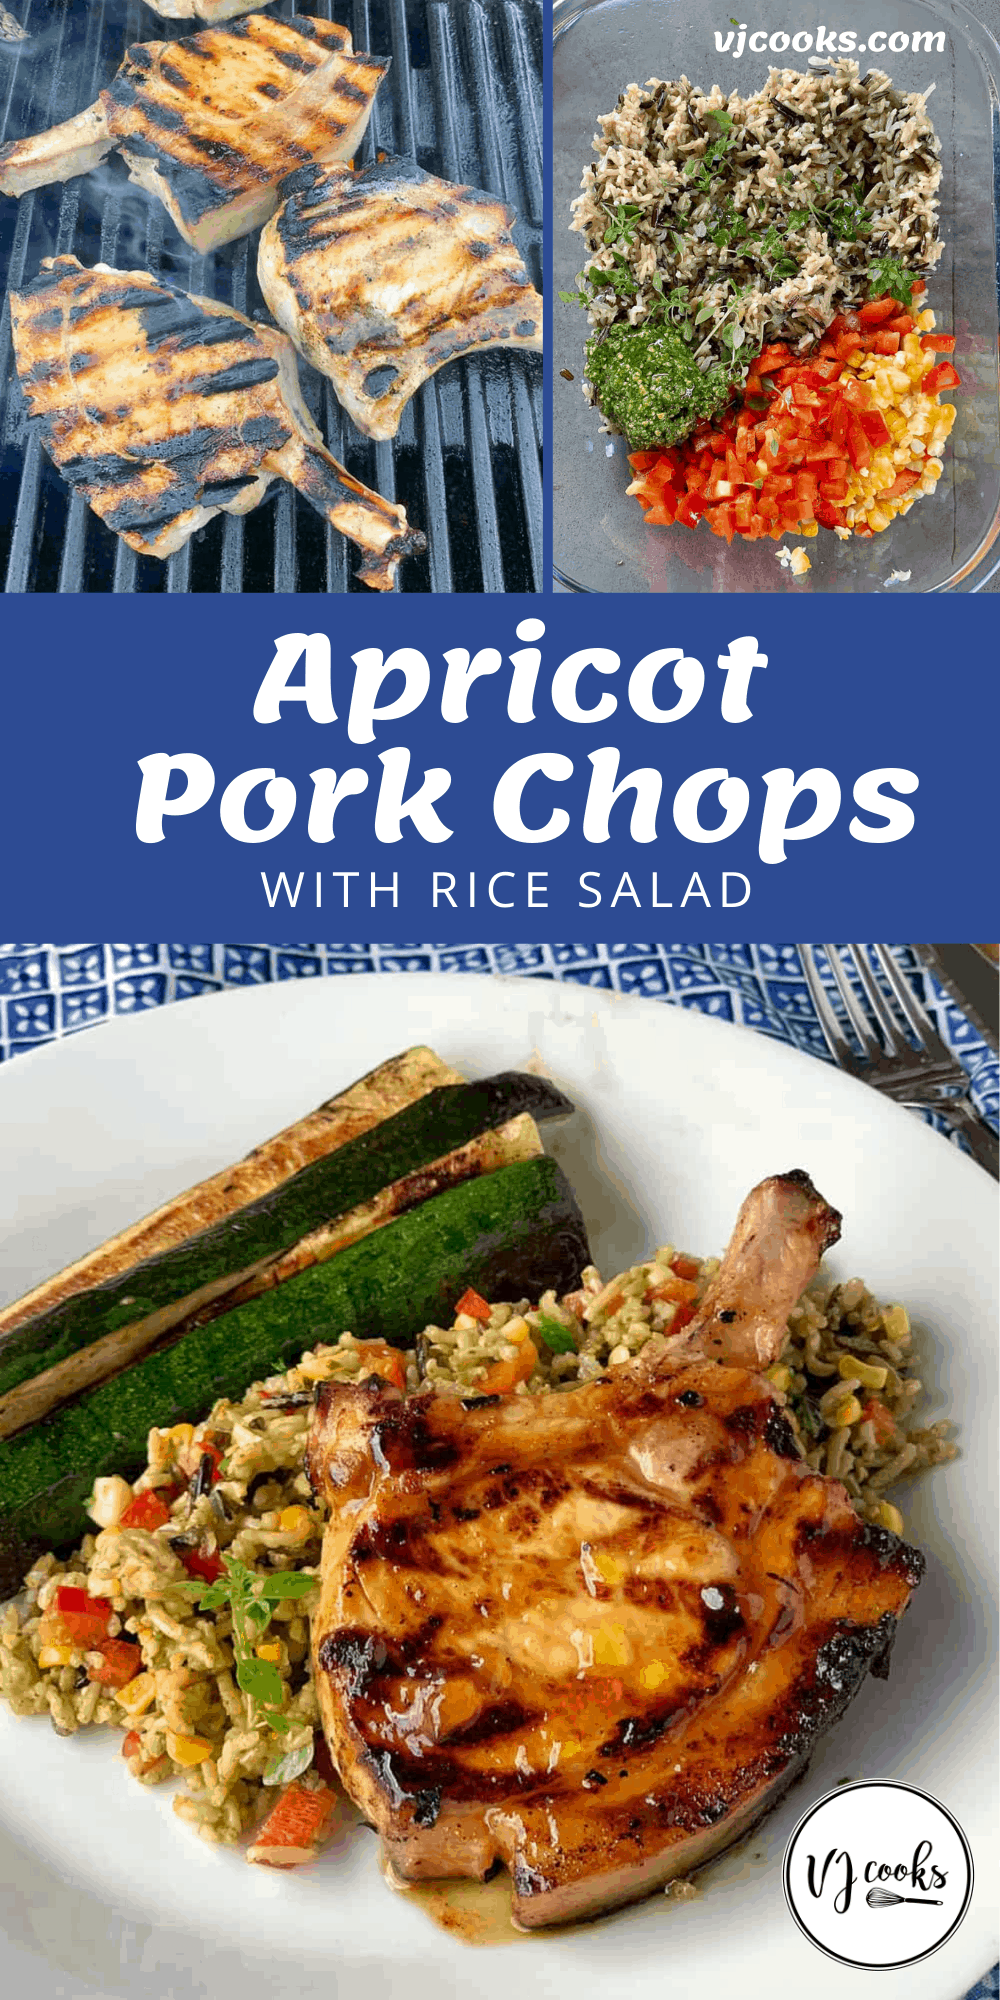 APRICOT PORK CHOPS WITH RICE SALAD